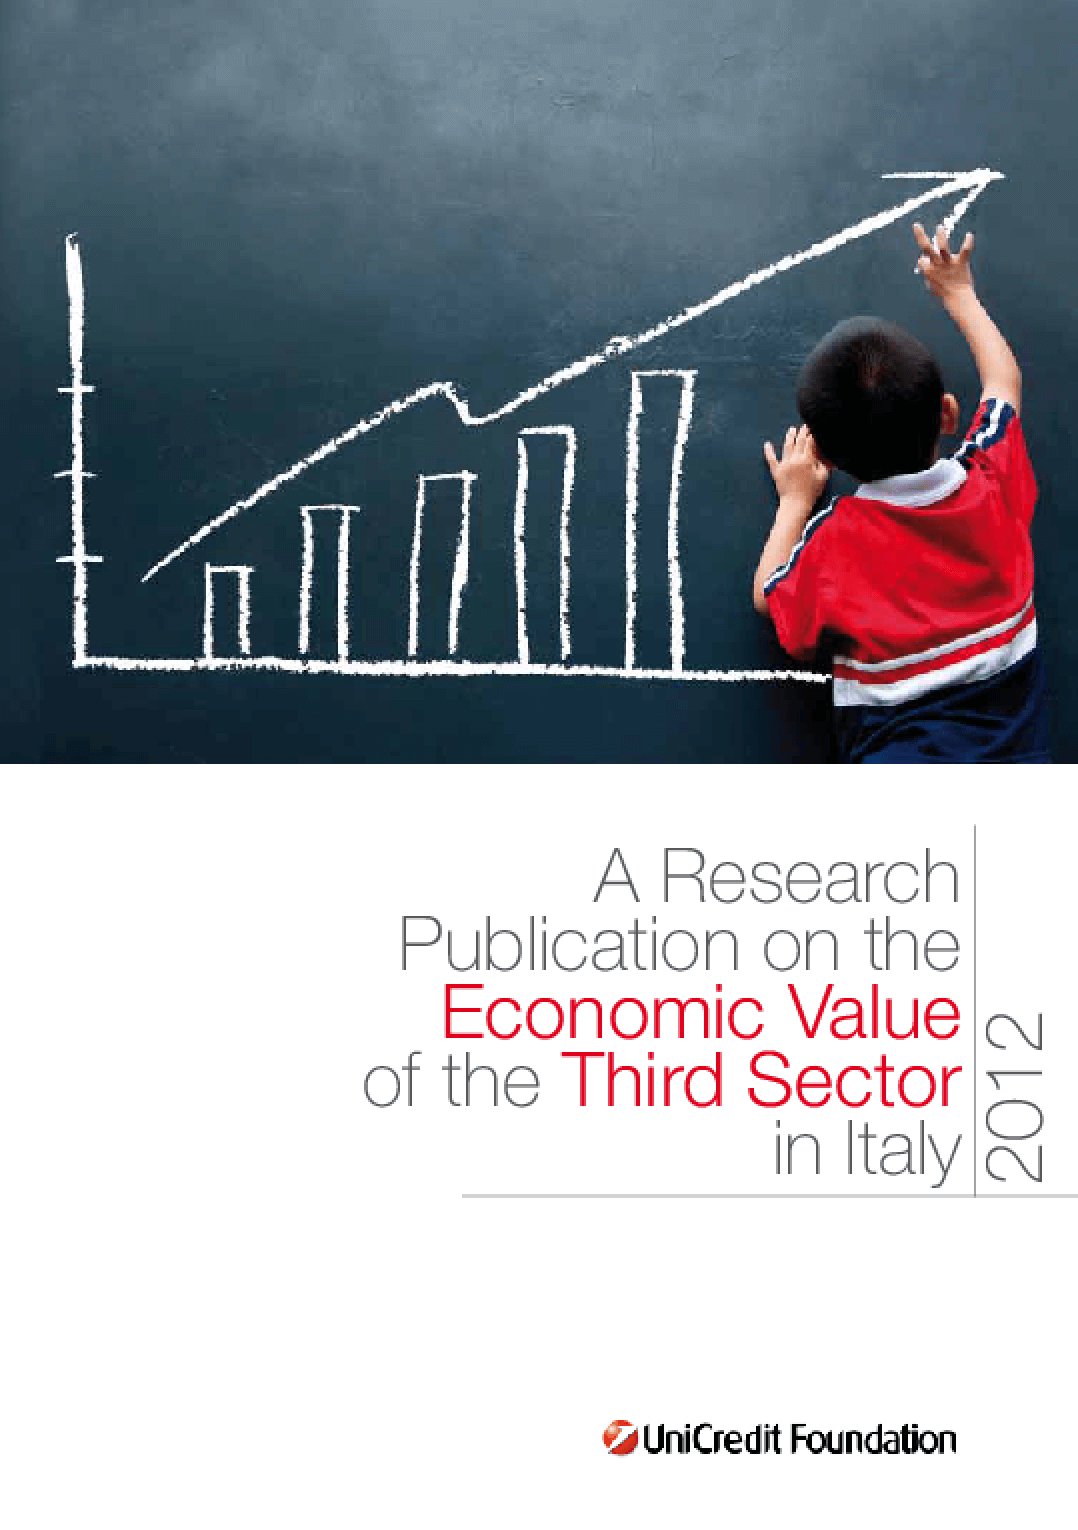 A Research Publication on the Economic Value of the Third Sector in Italy